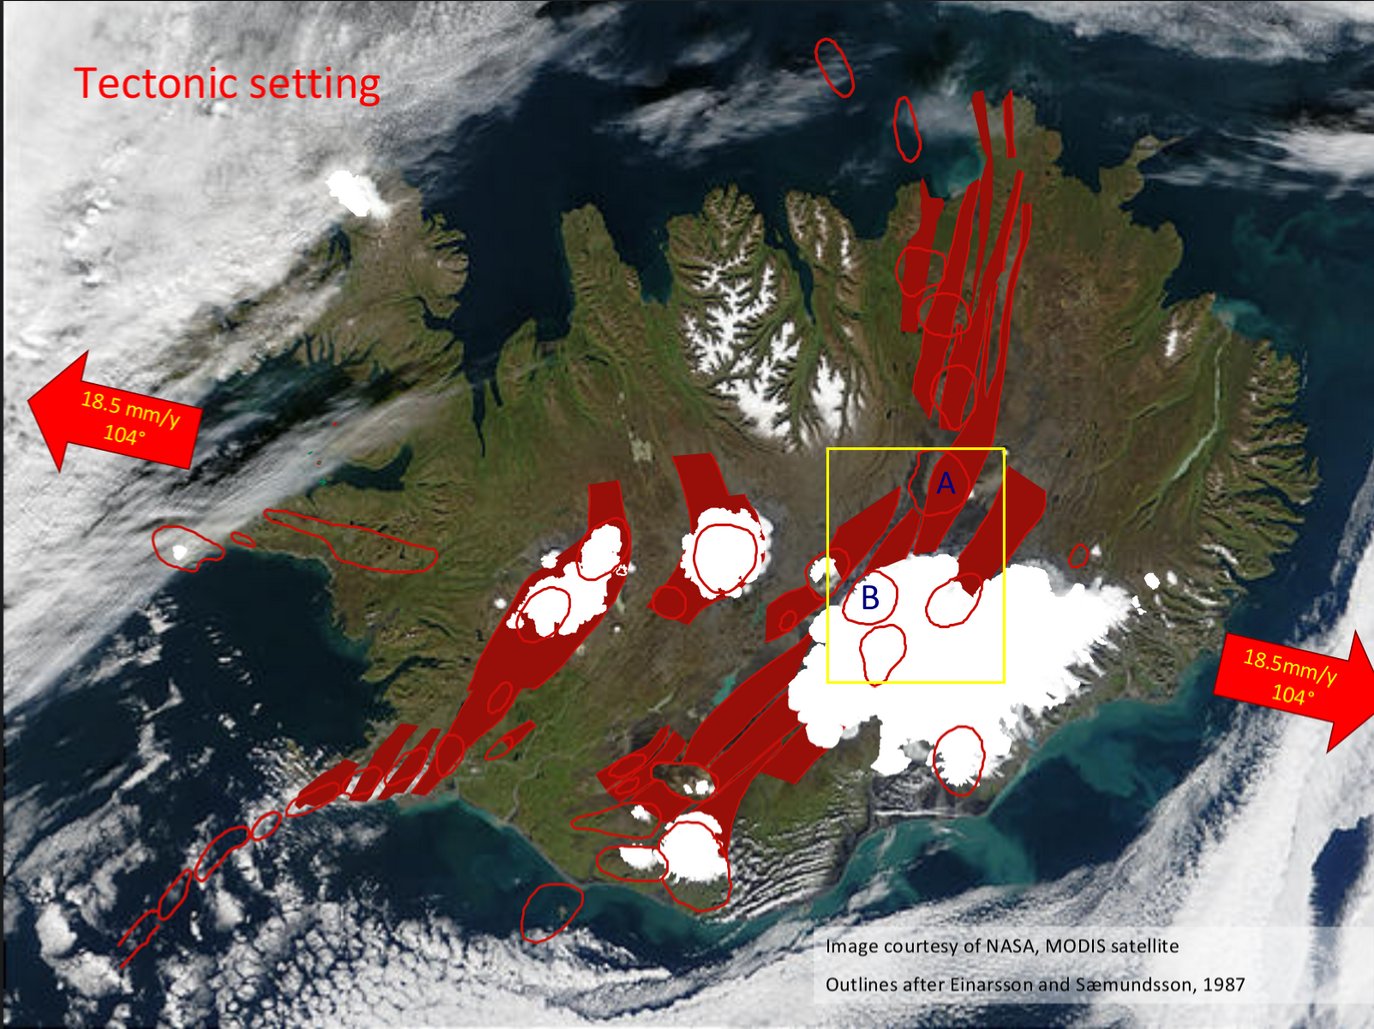 An annotated aerial photo of Iceland's tectonic setting, showing rift zones and vectors of motion pulled Iceland apart.